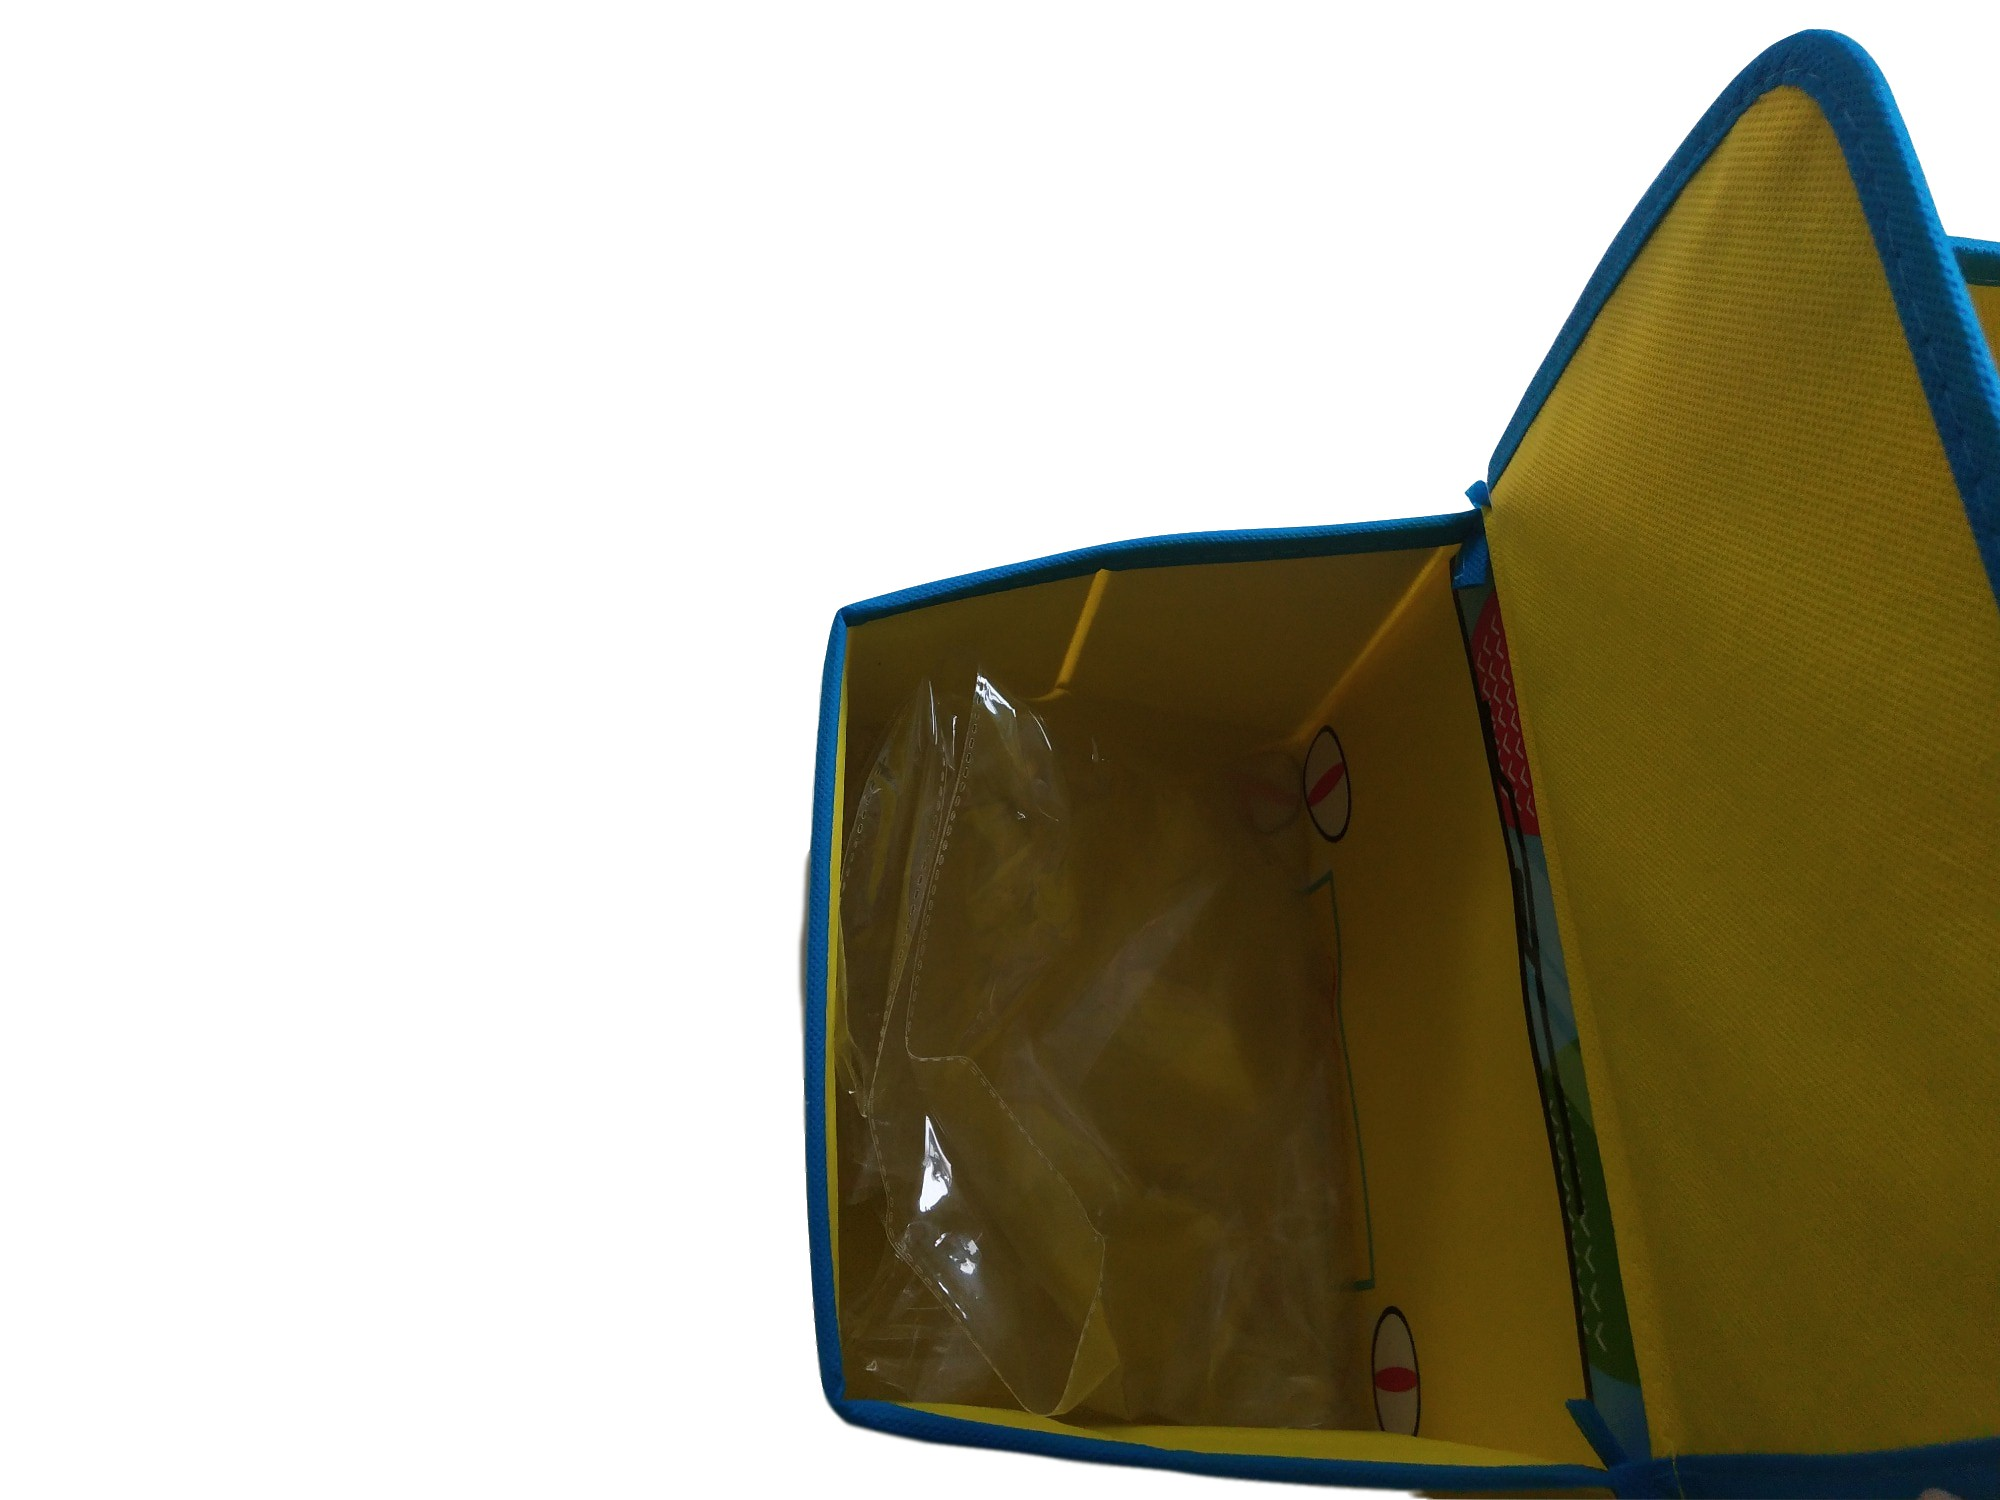 Wholesale Cute Kids Toy Baby Clothing Folding Storage Box Non Woven Fabric Storage Cube Boxes, Cute Kids Toy Baby Clothing Folding Storage Box Non Woven Fabric Storage Cube Boxes Manufacturers, Cute Kids Toy Baby Clothing Folding Storage Box Non Woven Fabric Storage Cube Boxes Producers